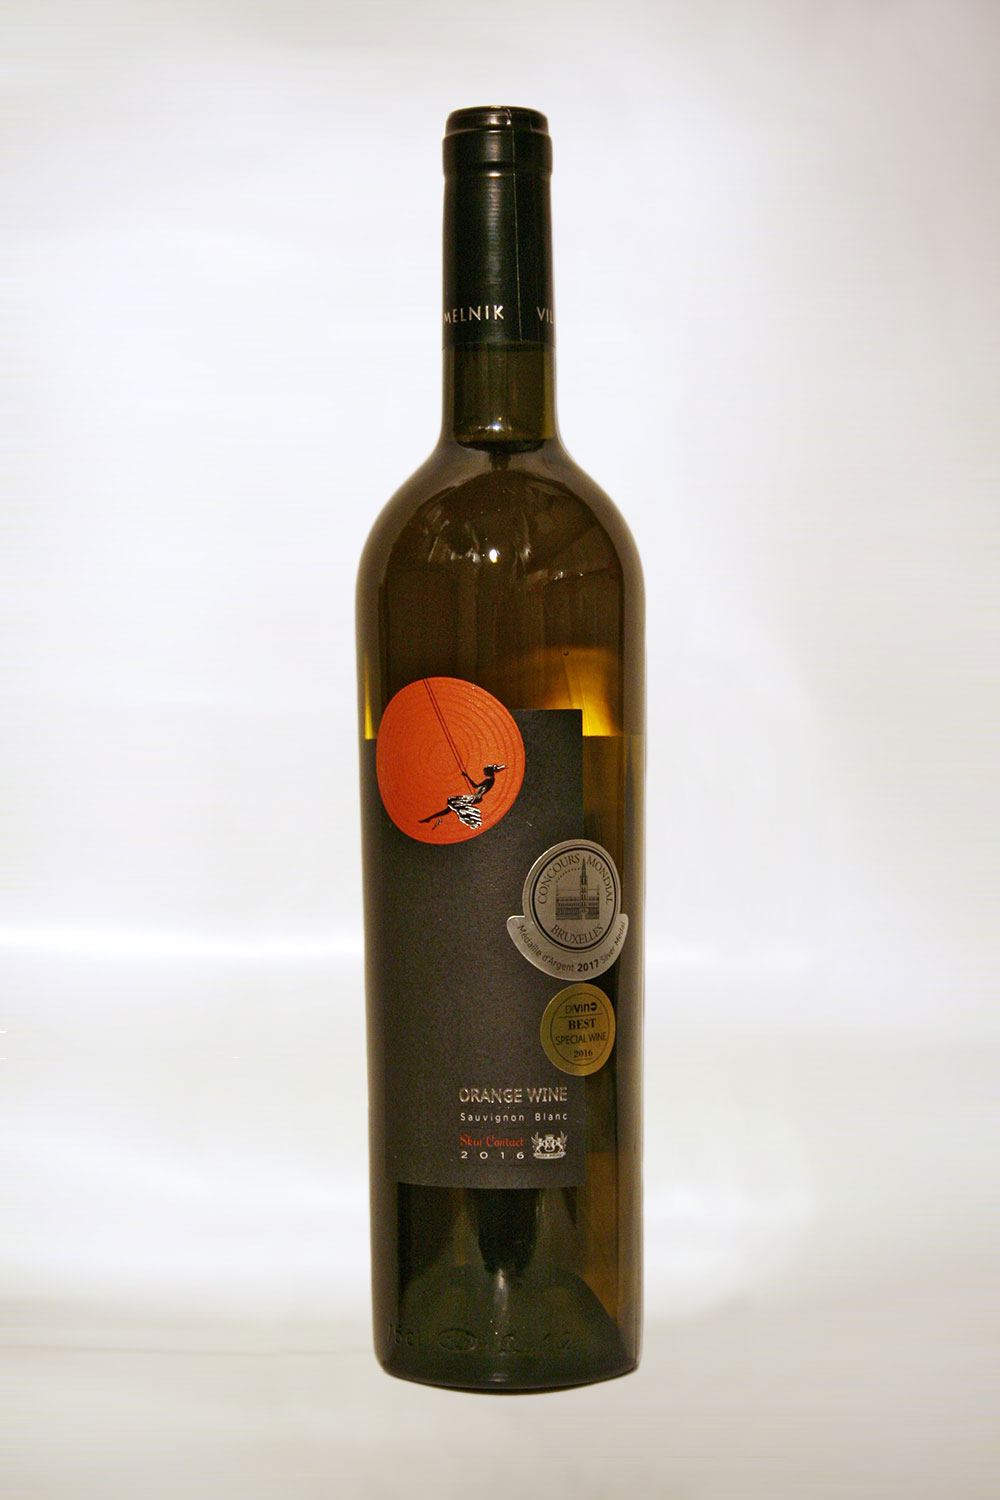 Villa Melnik Orange Wine Sauvignon Blanc 2016